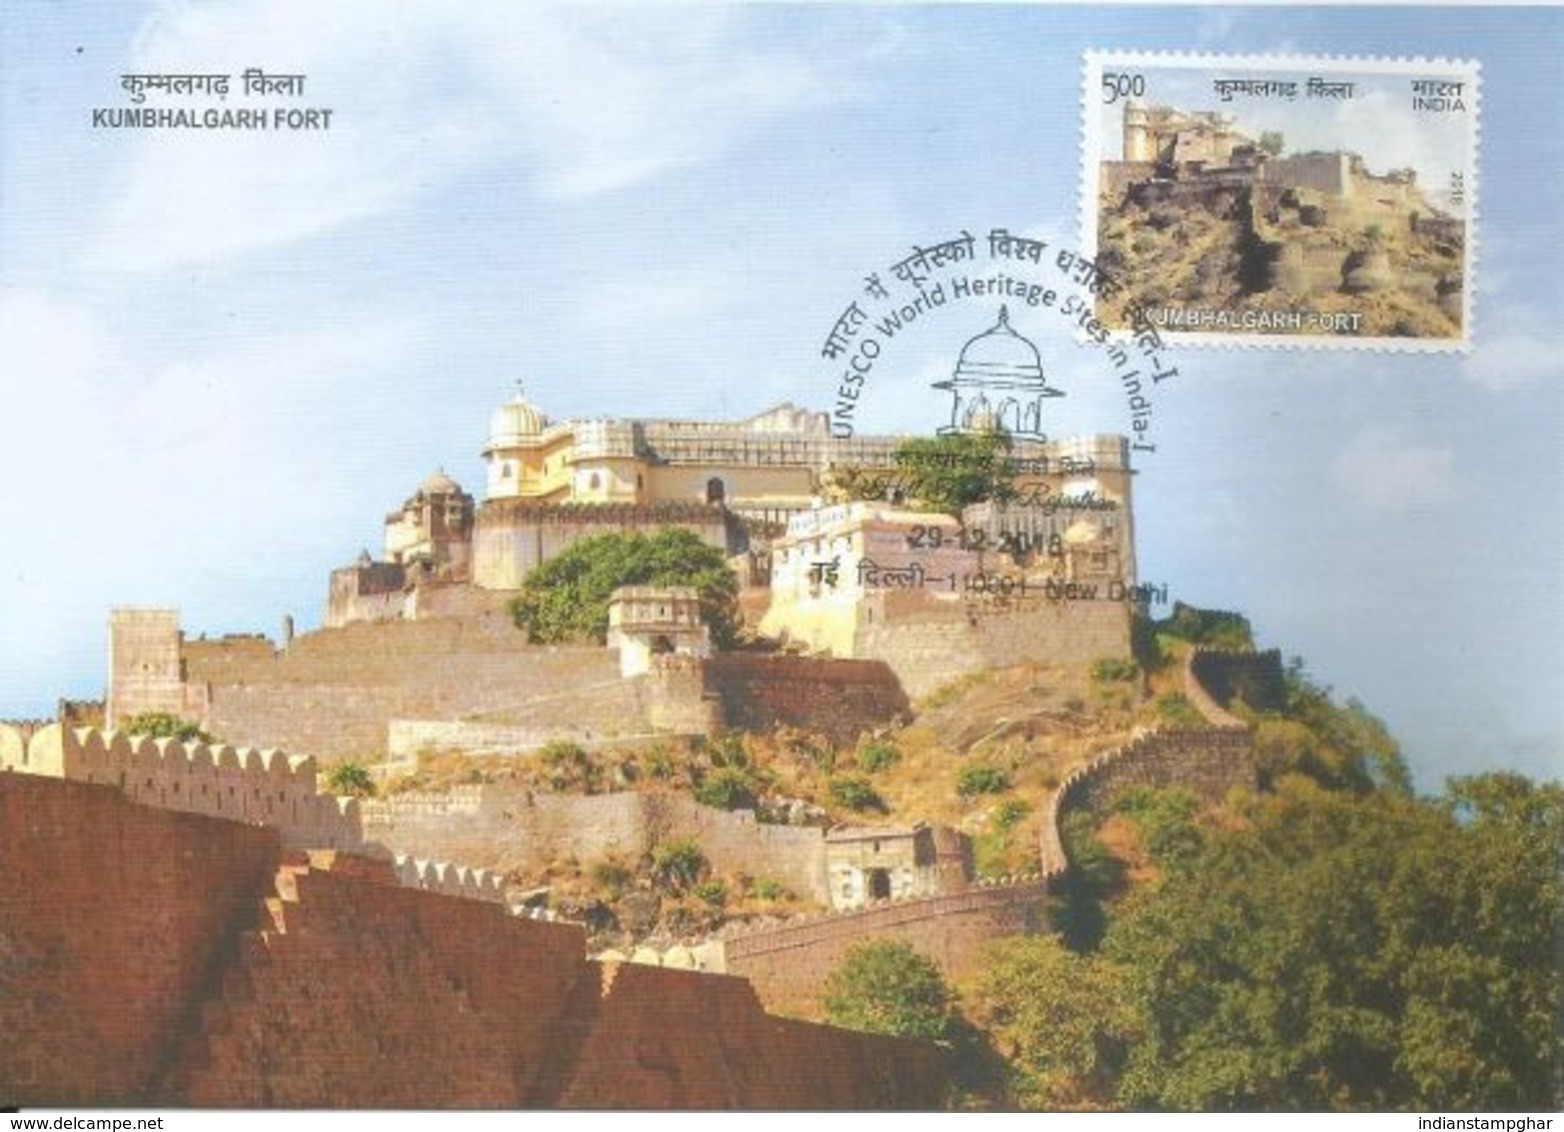 Kumbhalgarh Fort, Maxim Card,UNESCO World Heritage Site ,Hill Forts Of Rajasthan, By India Post - Monuments